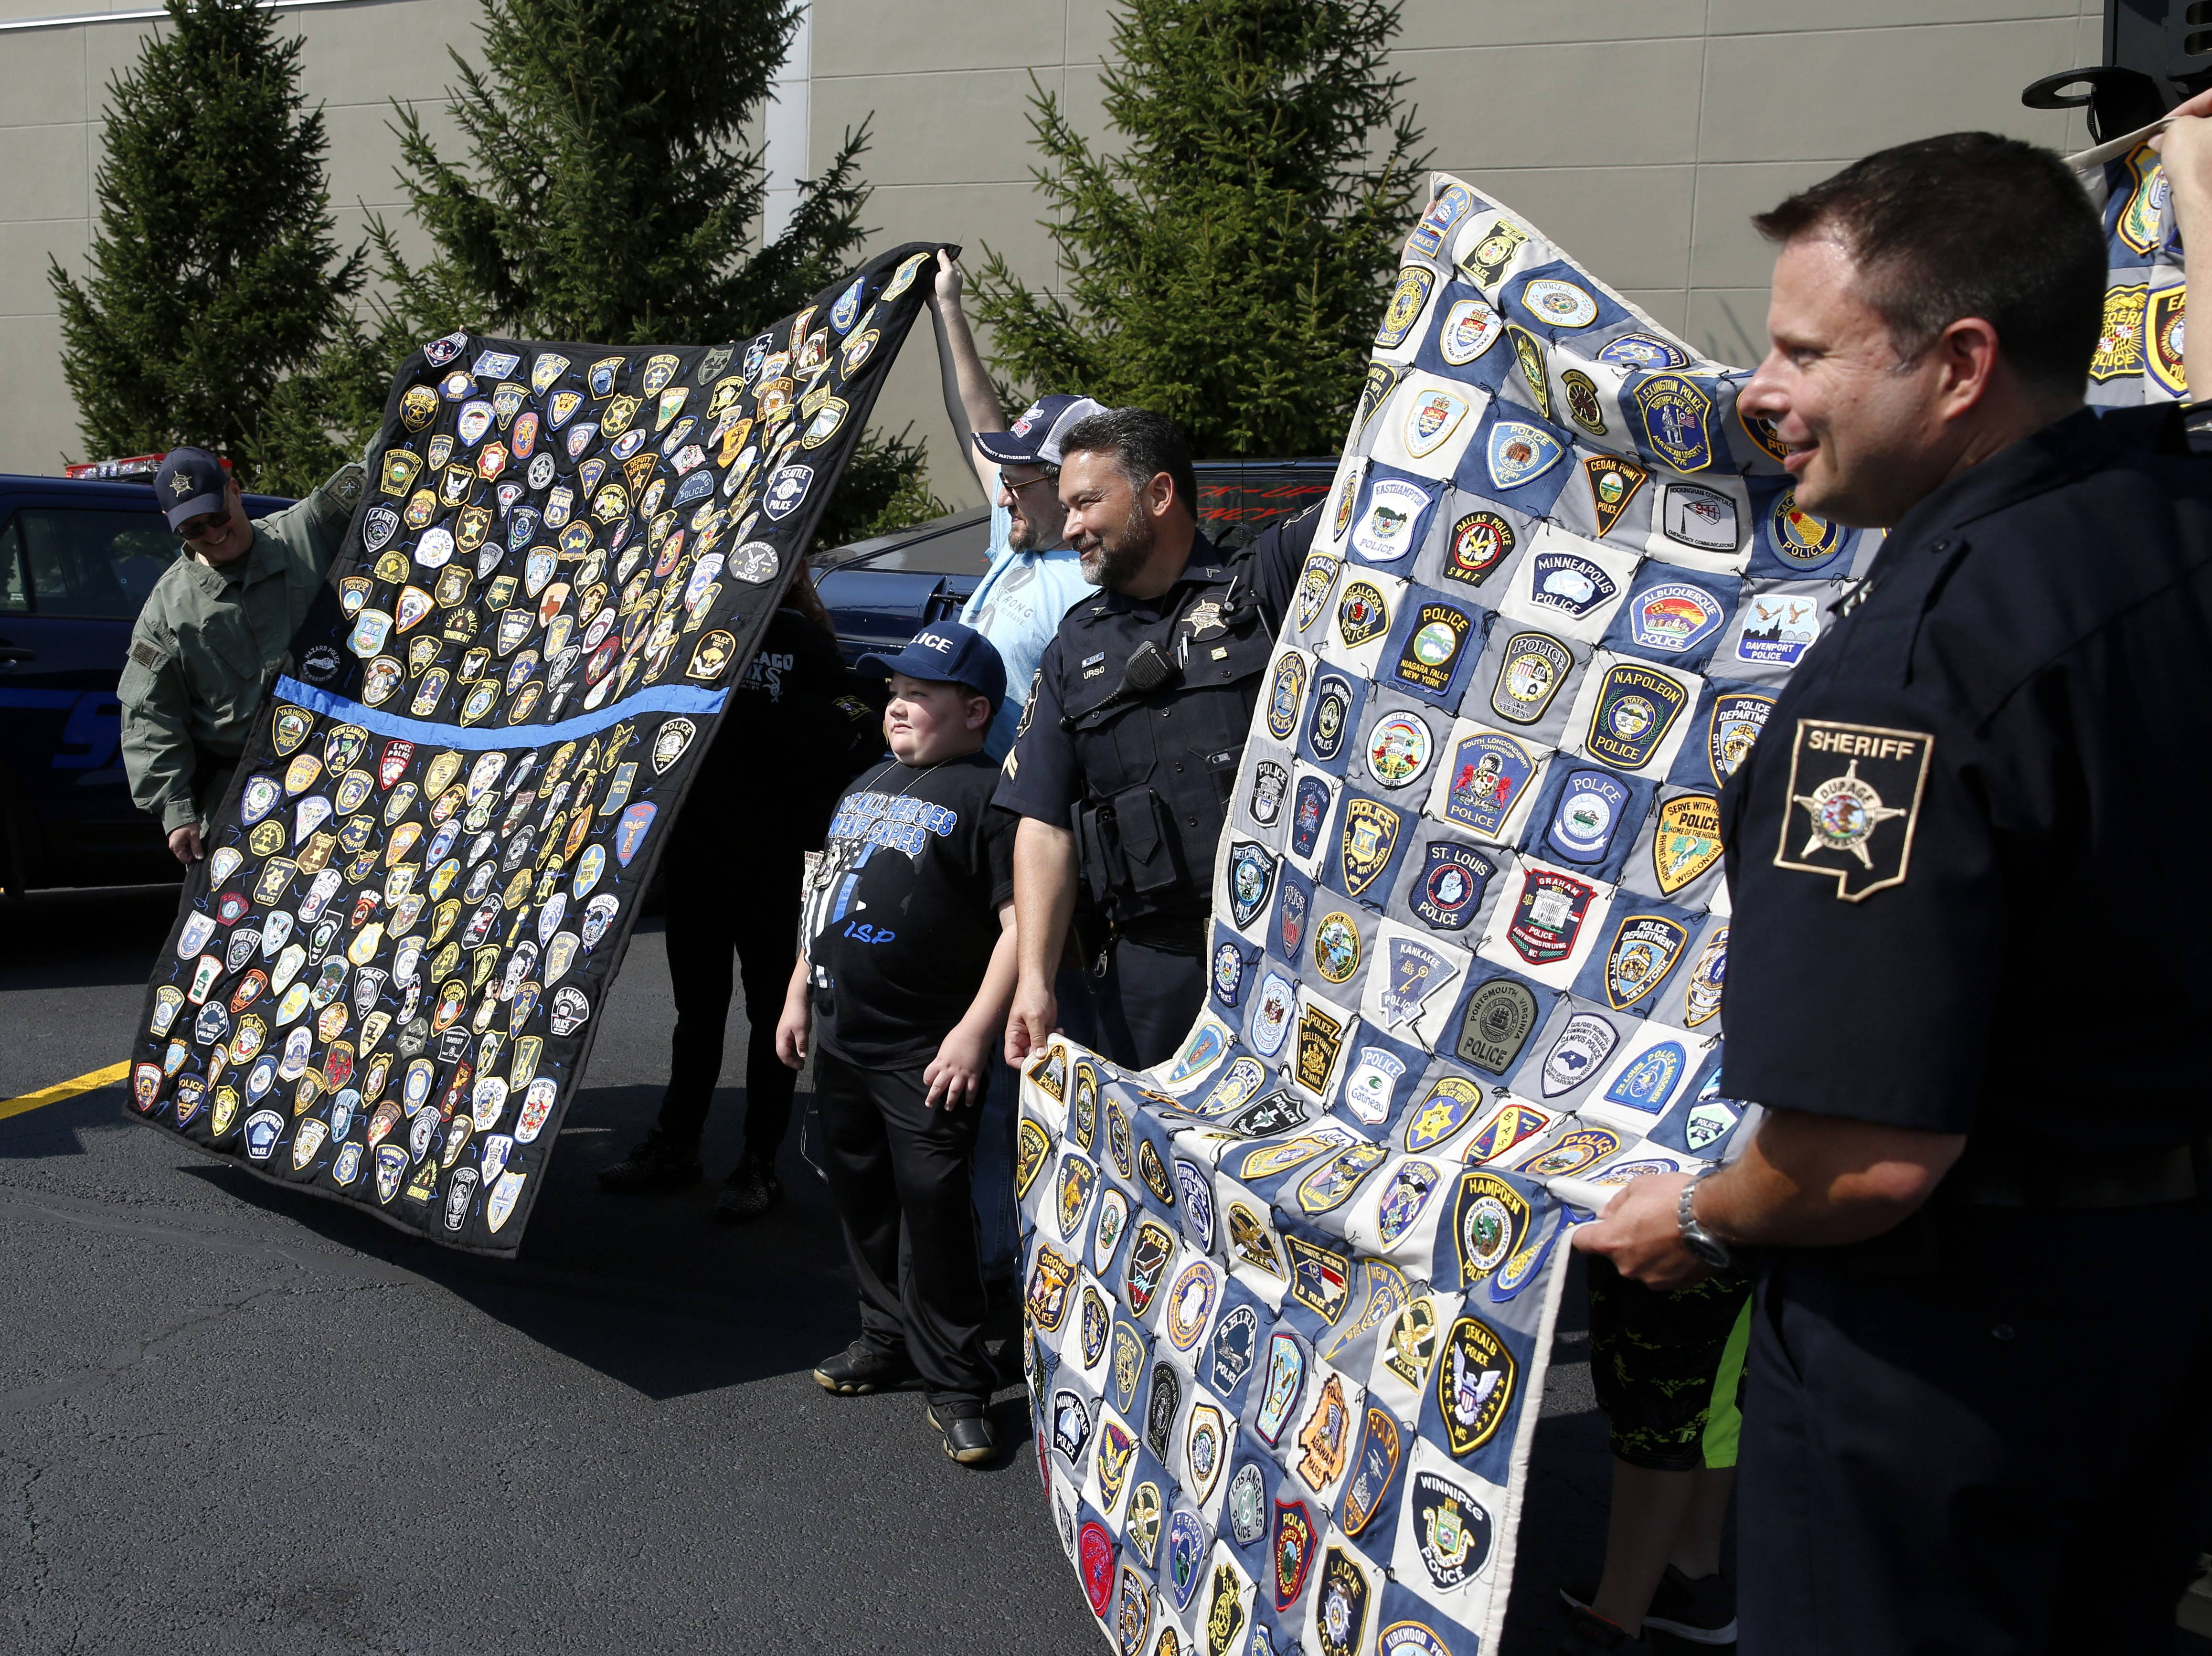 DuPage County sheriff's office personnel display more than 300 of the 2,500-plus police patch collection amassed by Drake Price, an Indiana 11-year-old who is receiving treatment for a benign brain tumor the size of a baseball at Northwestern Medicine Chicago Proton Center in Warrenville.